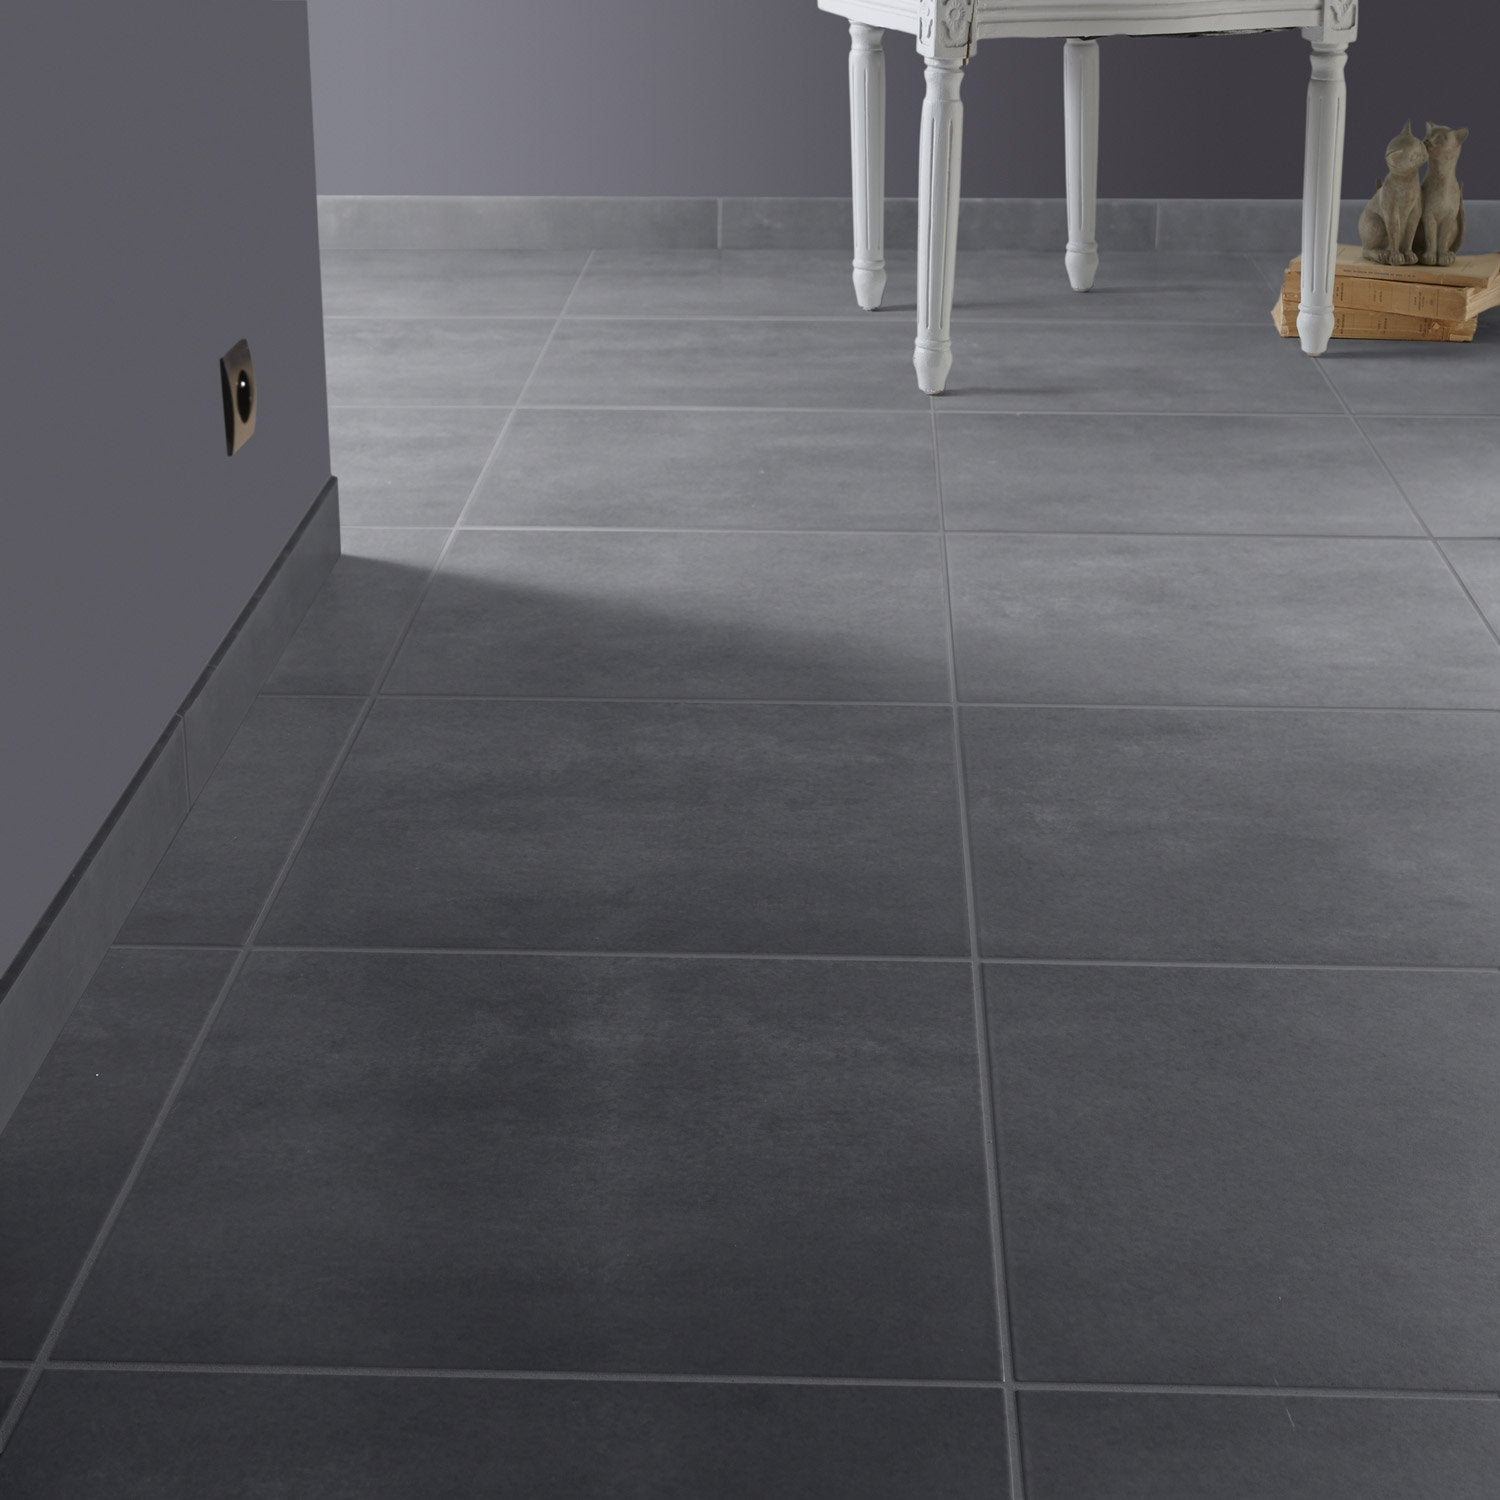 Carrelage sol et mur gris 28 images carrelage sol et for Carrelage le roy merlin